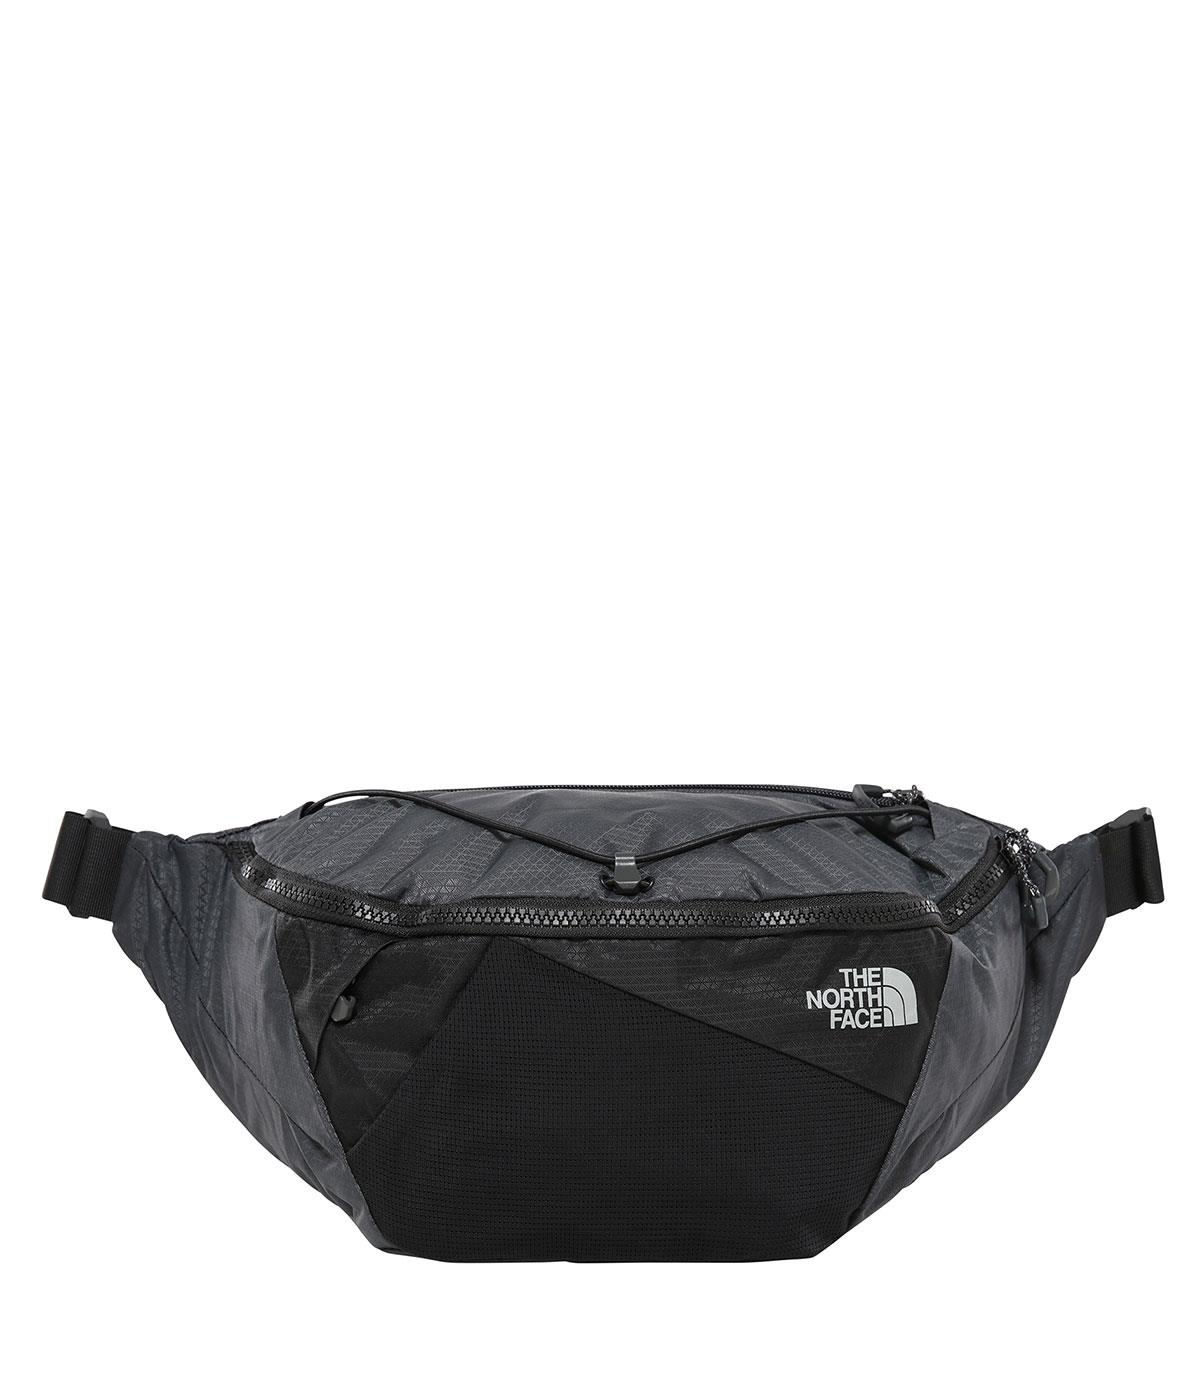 The Northface Lumbnical - S T93S7Zmn8 Çanta